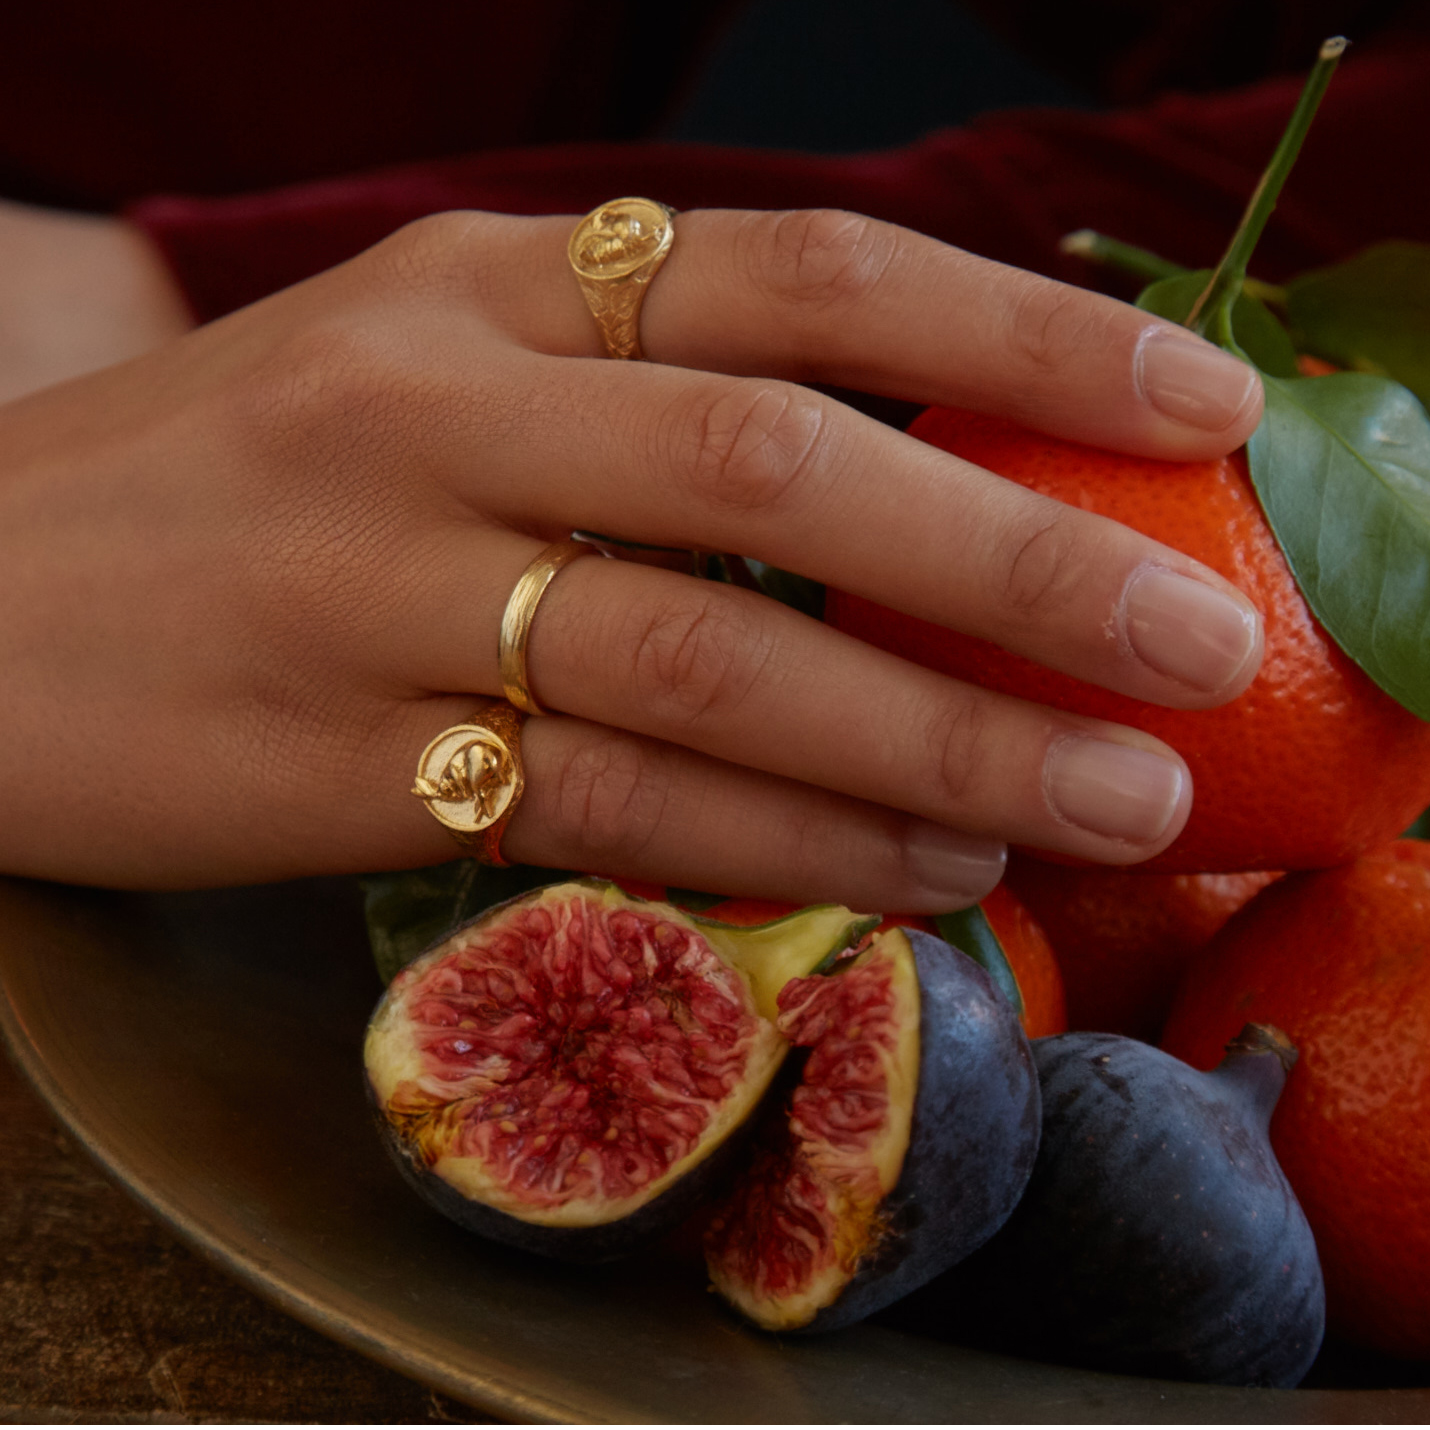 fairmined gold plated sleeping hare and rooster signet rings worn by model